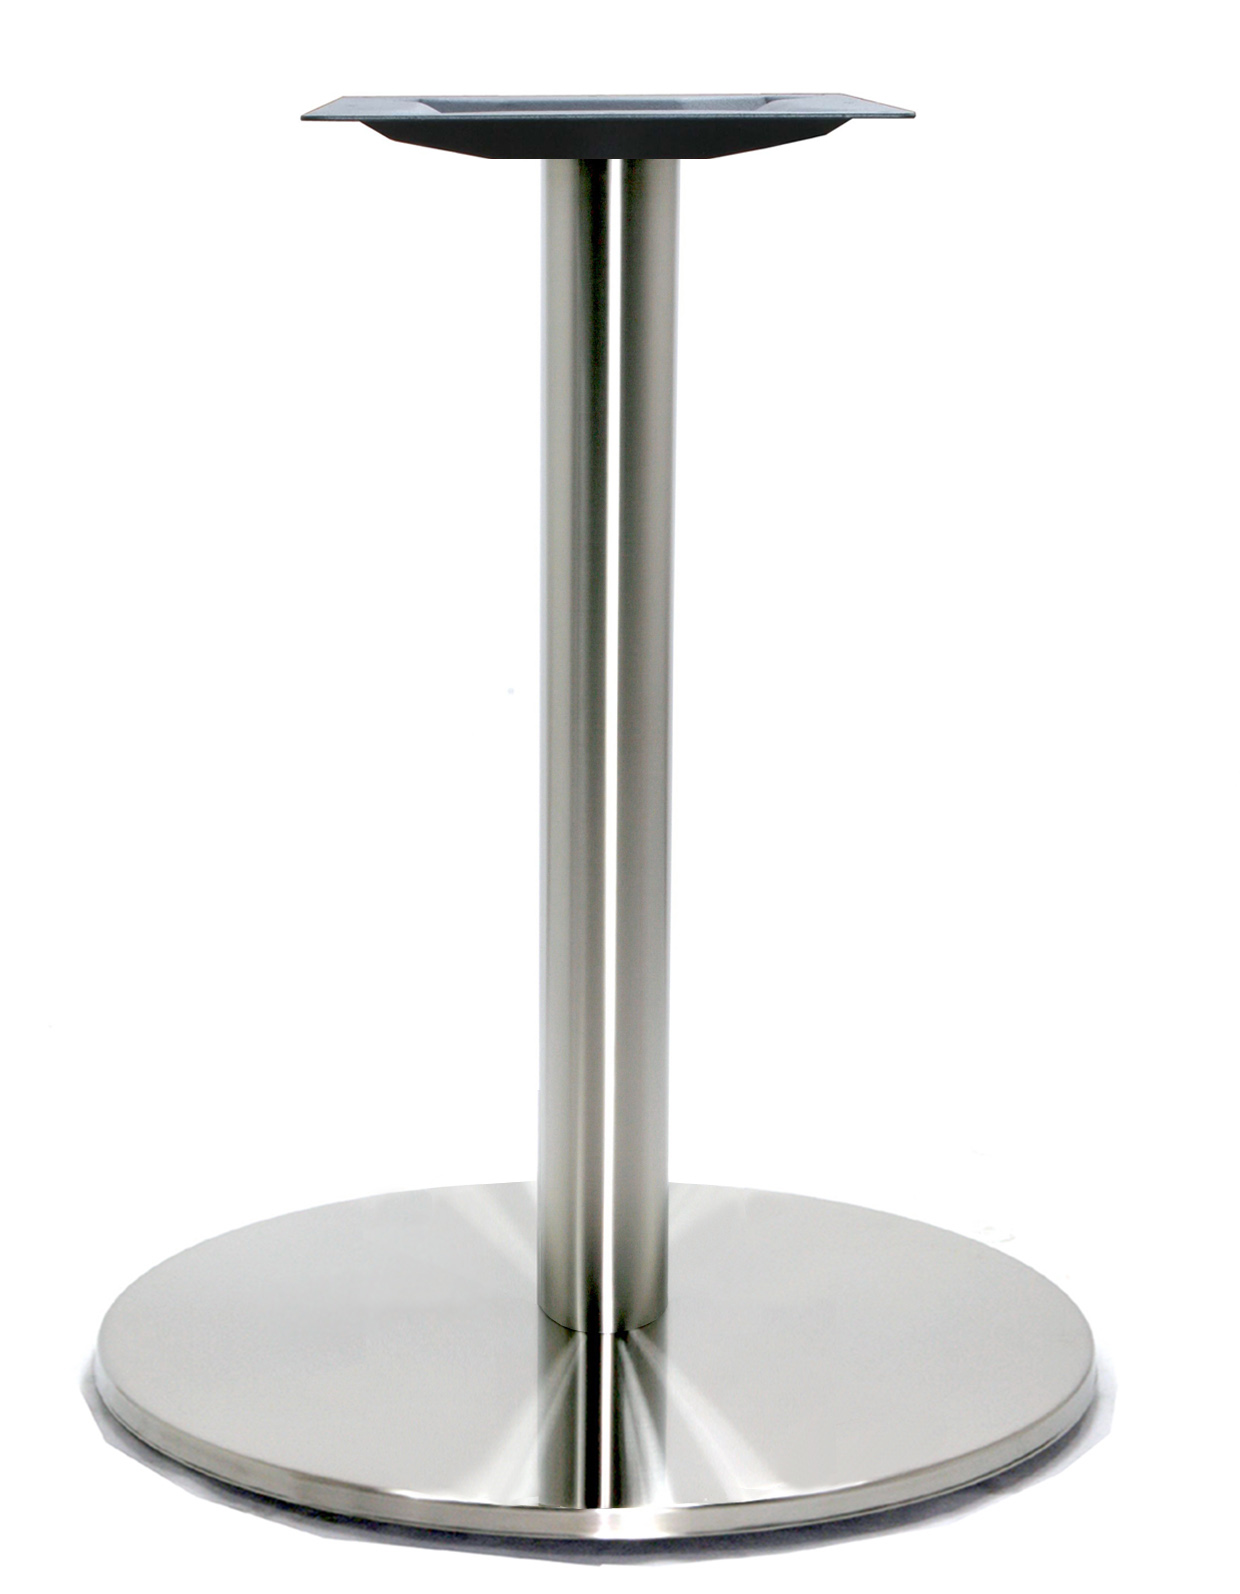 21″ Round Table Base, Stainless Steel Finish, up to 36″ Tops